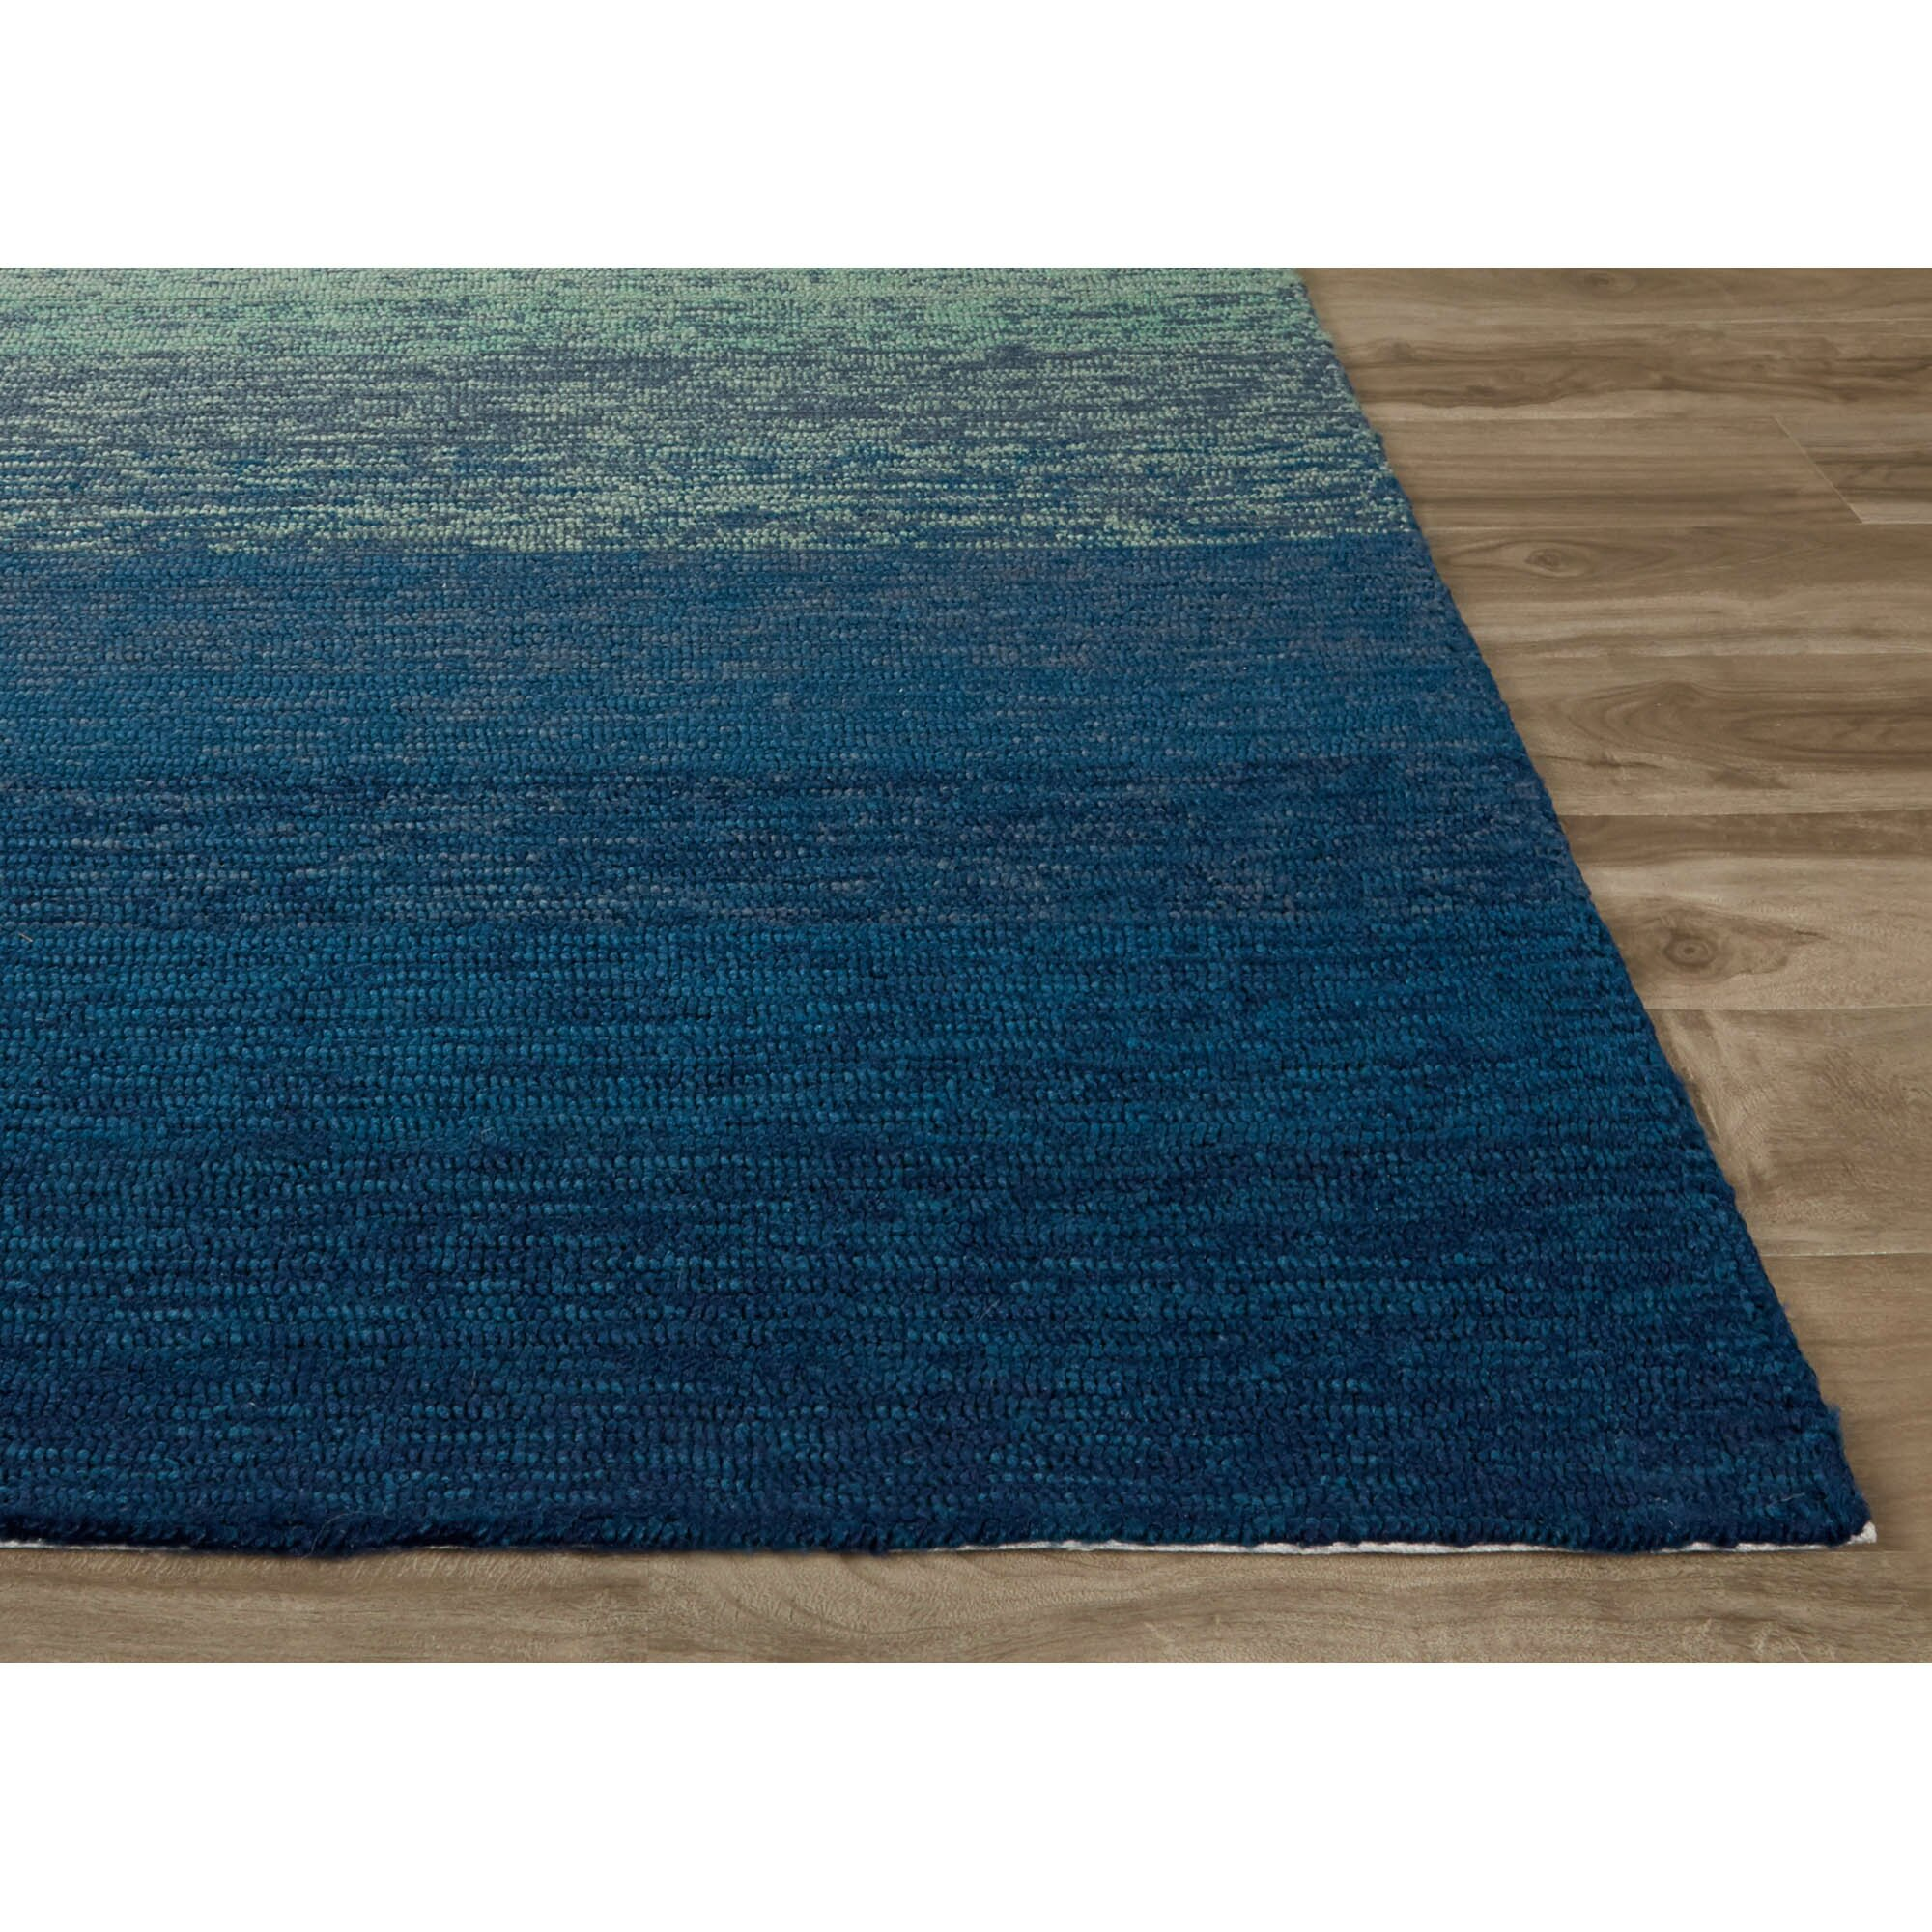 jaipurliving catalina blue green indoor outdoor area rug. Black Bedroom Furniture Sets. Home Design Ideas